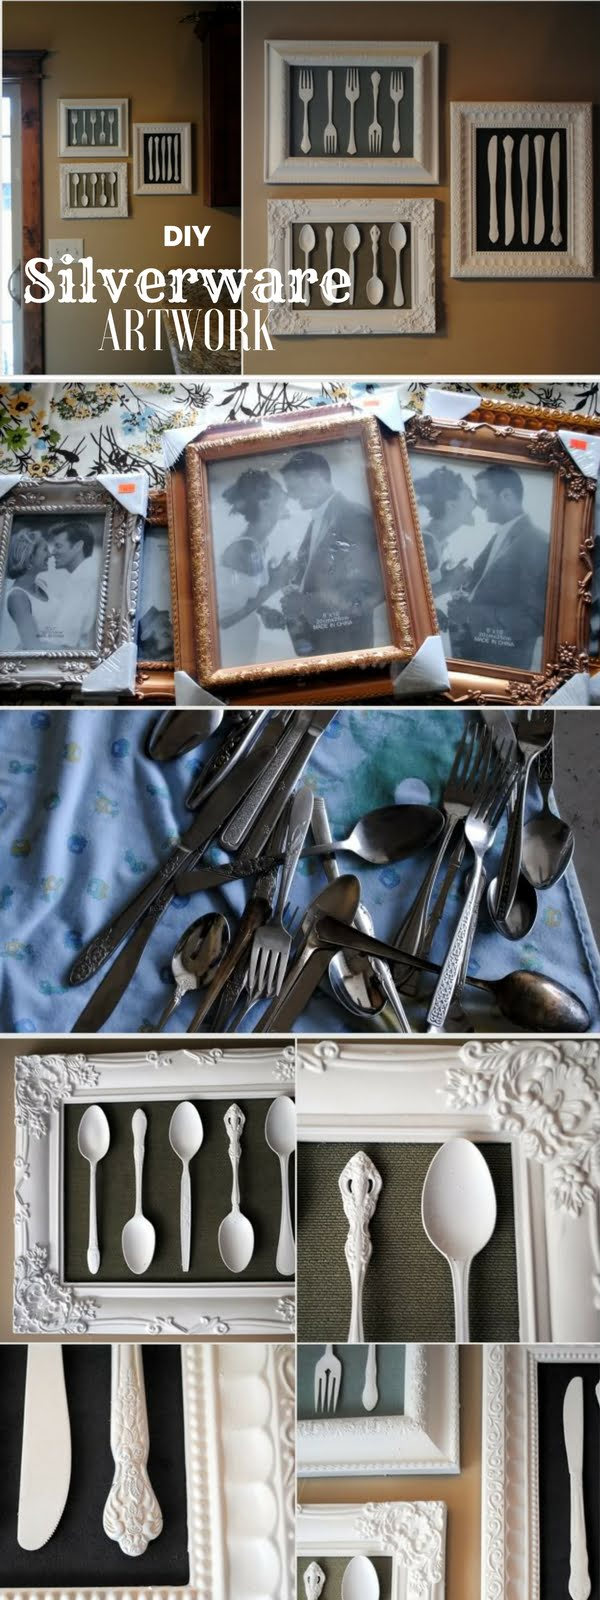 Check out the tutorial:  Silverware Artwork